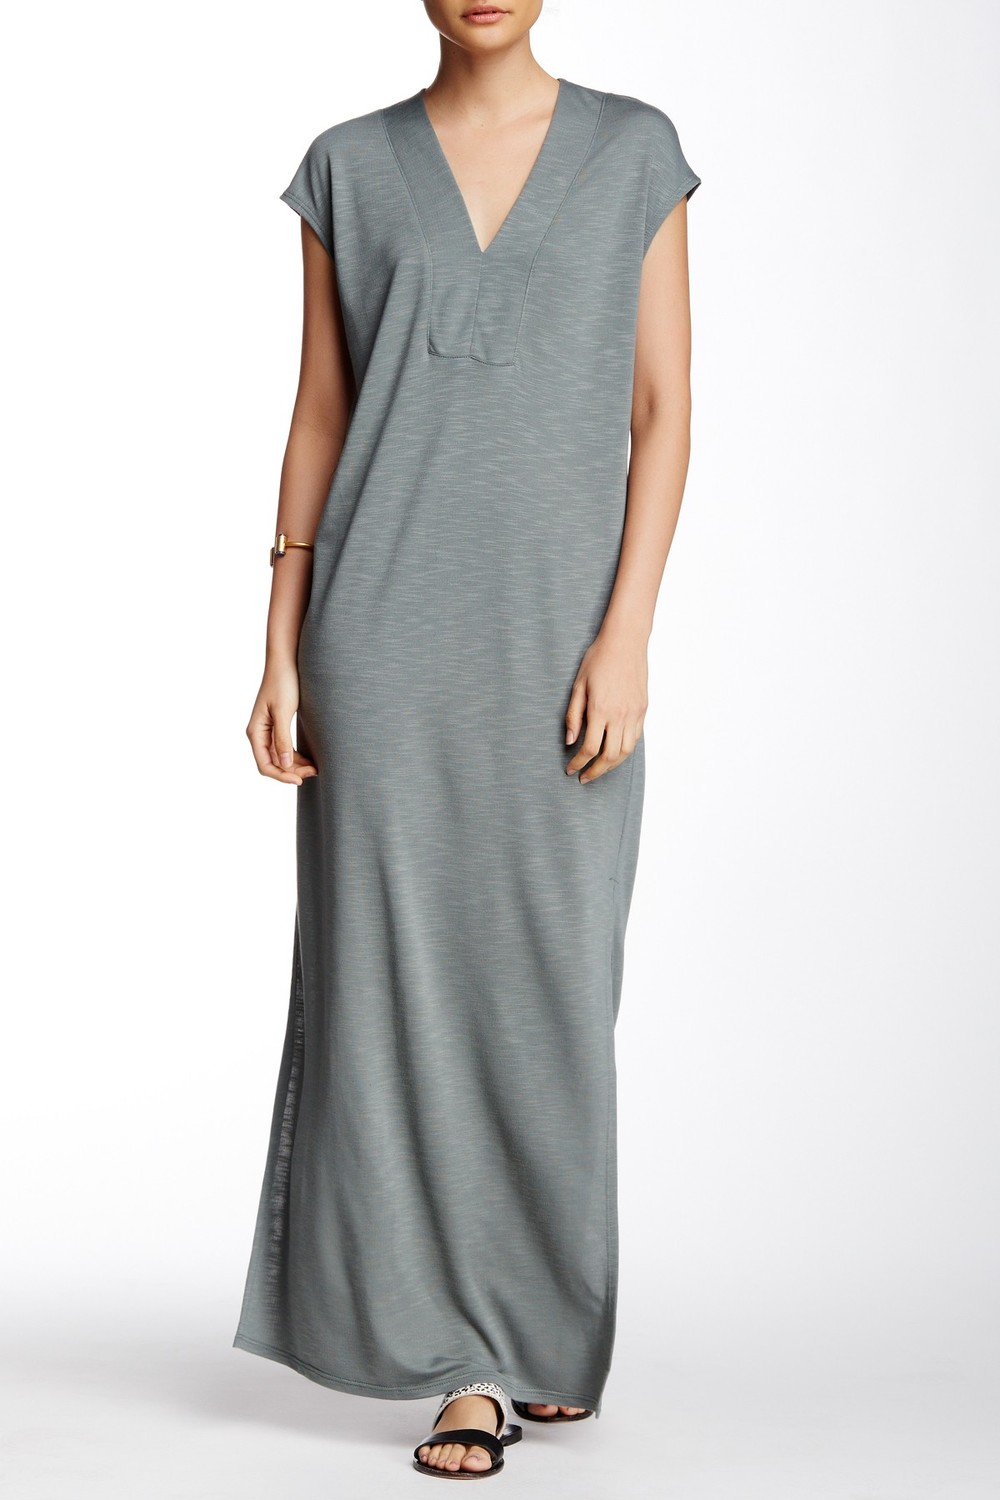 Lanston Caftan Maxi Dress. Nordstrom Rack. Was: $150 Now: $49.